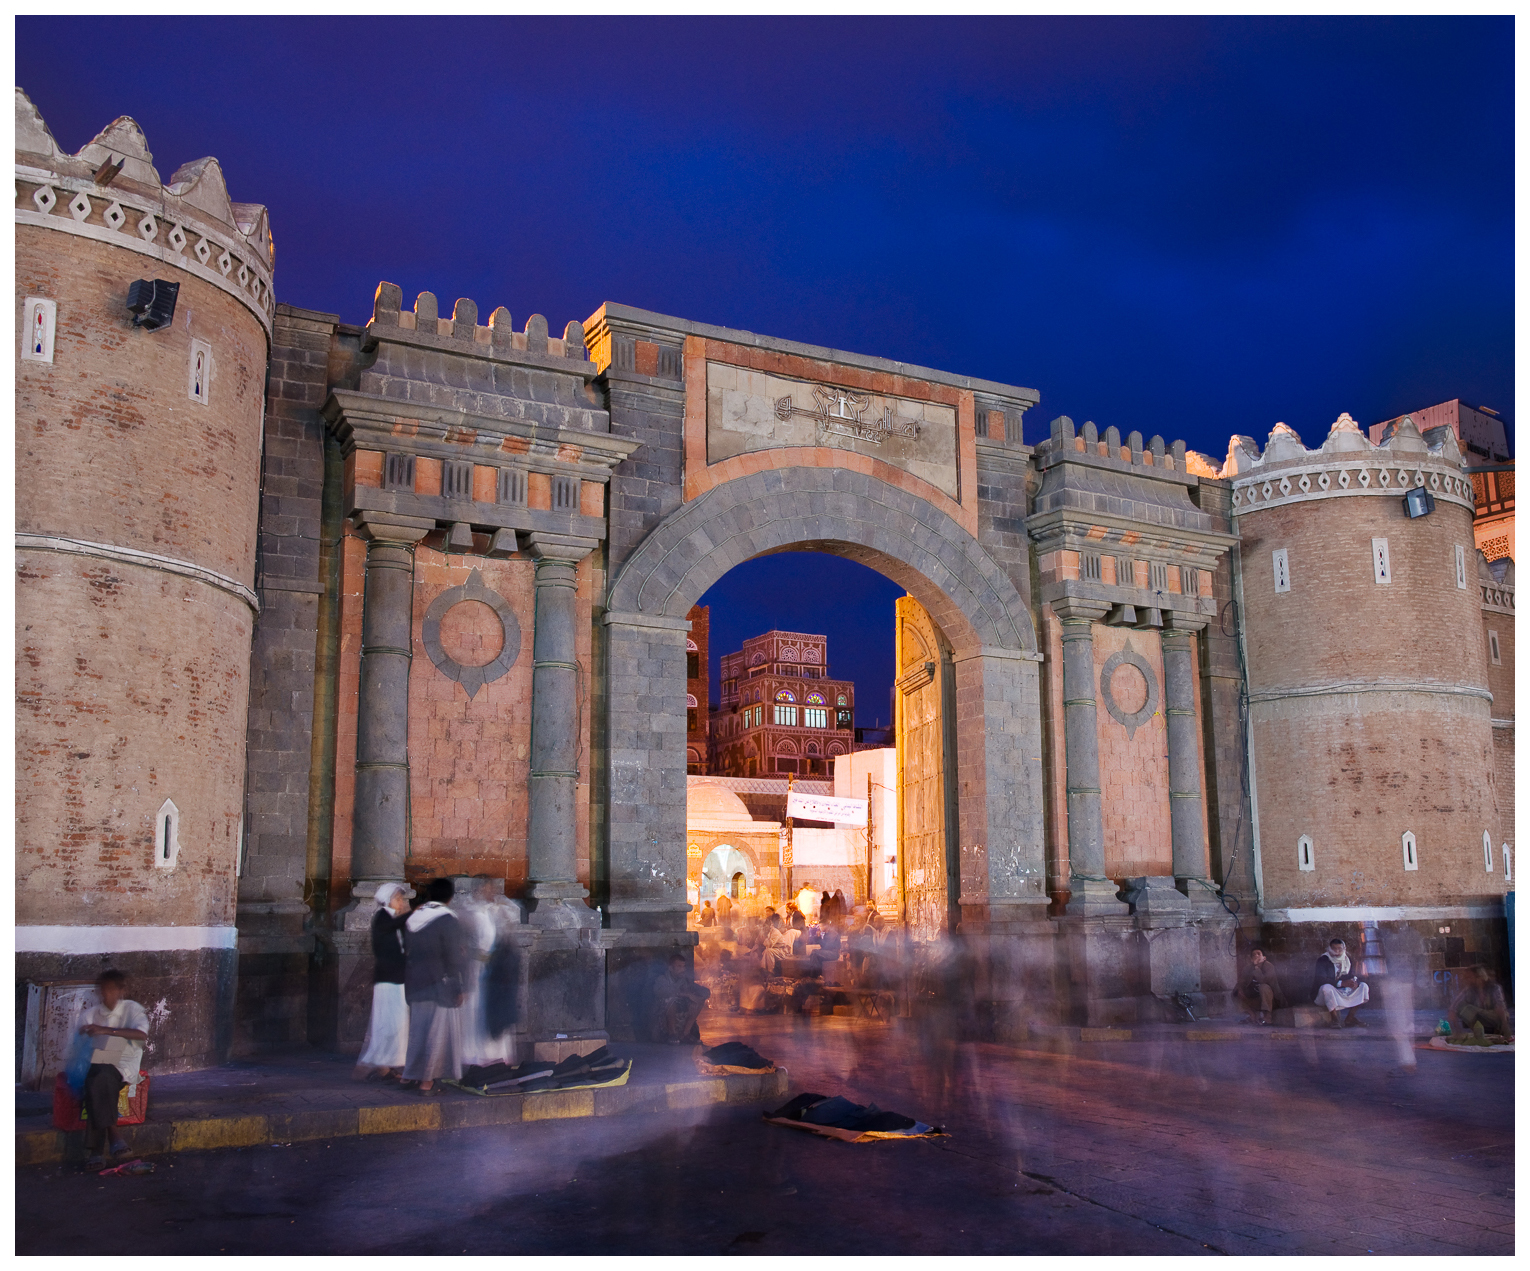 05Bab Al Yemen, Gate to the Old City of Sana'a_DSC2516.jpg